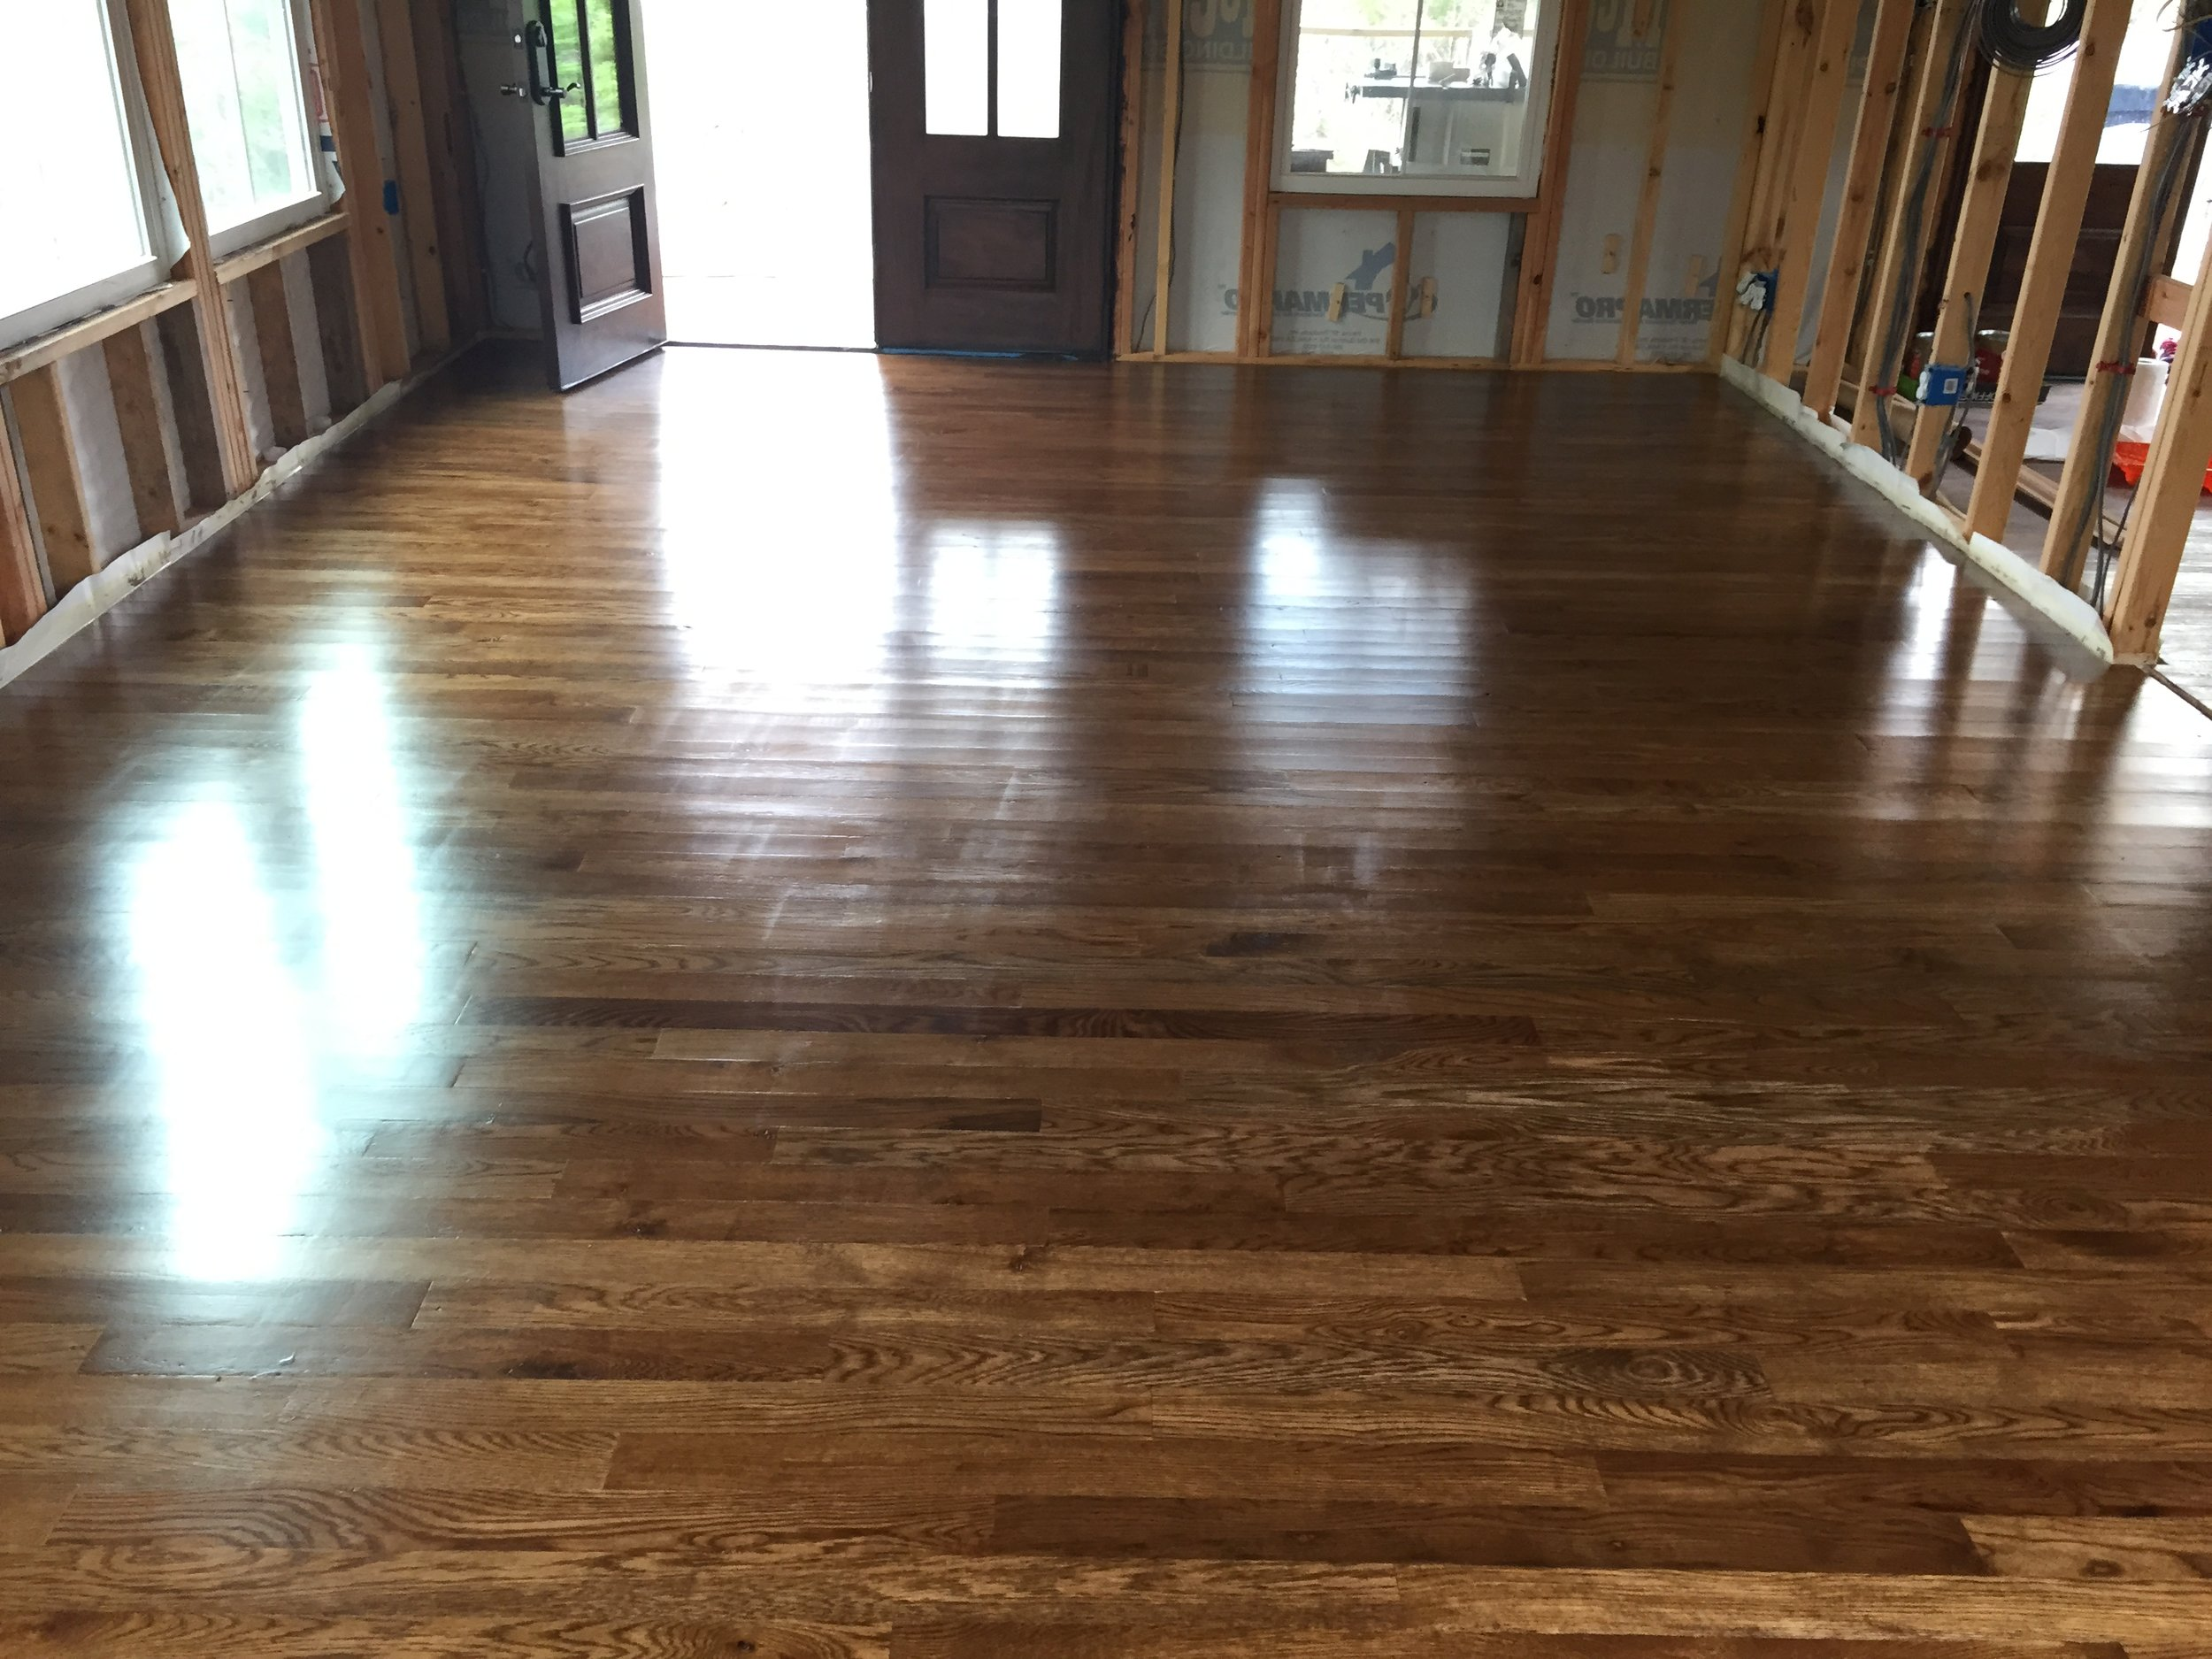 Learning to install solid hardwood is a little different from installing engineered hardwood